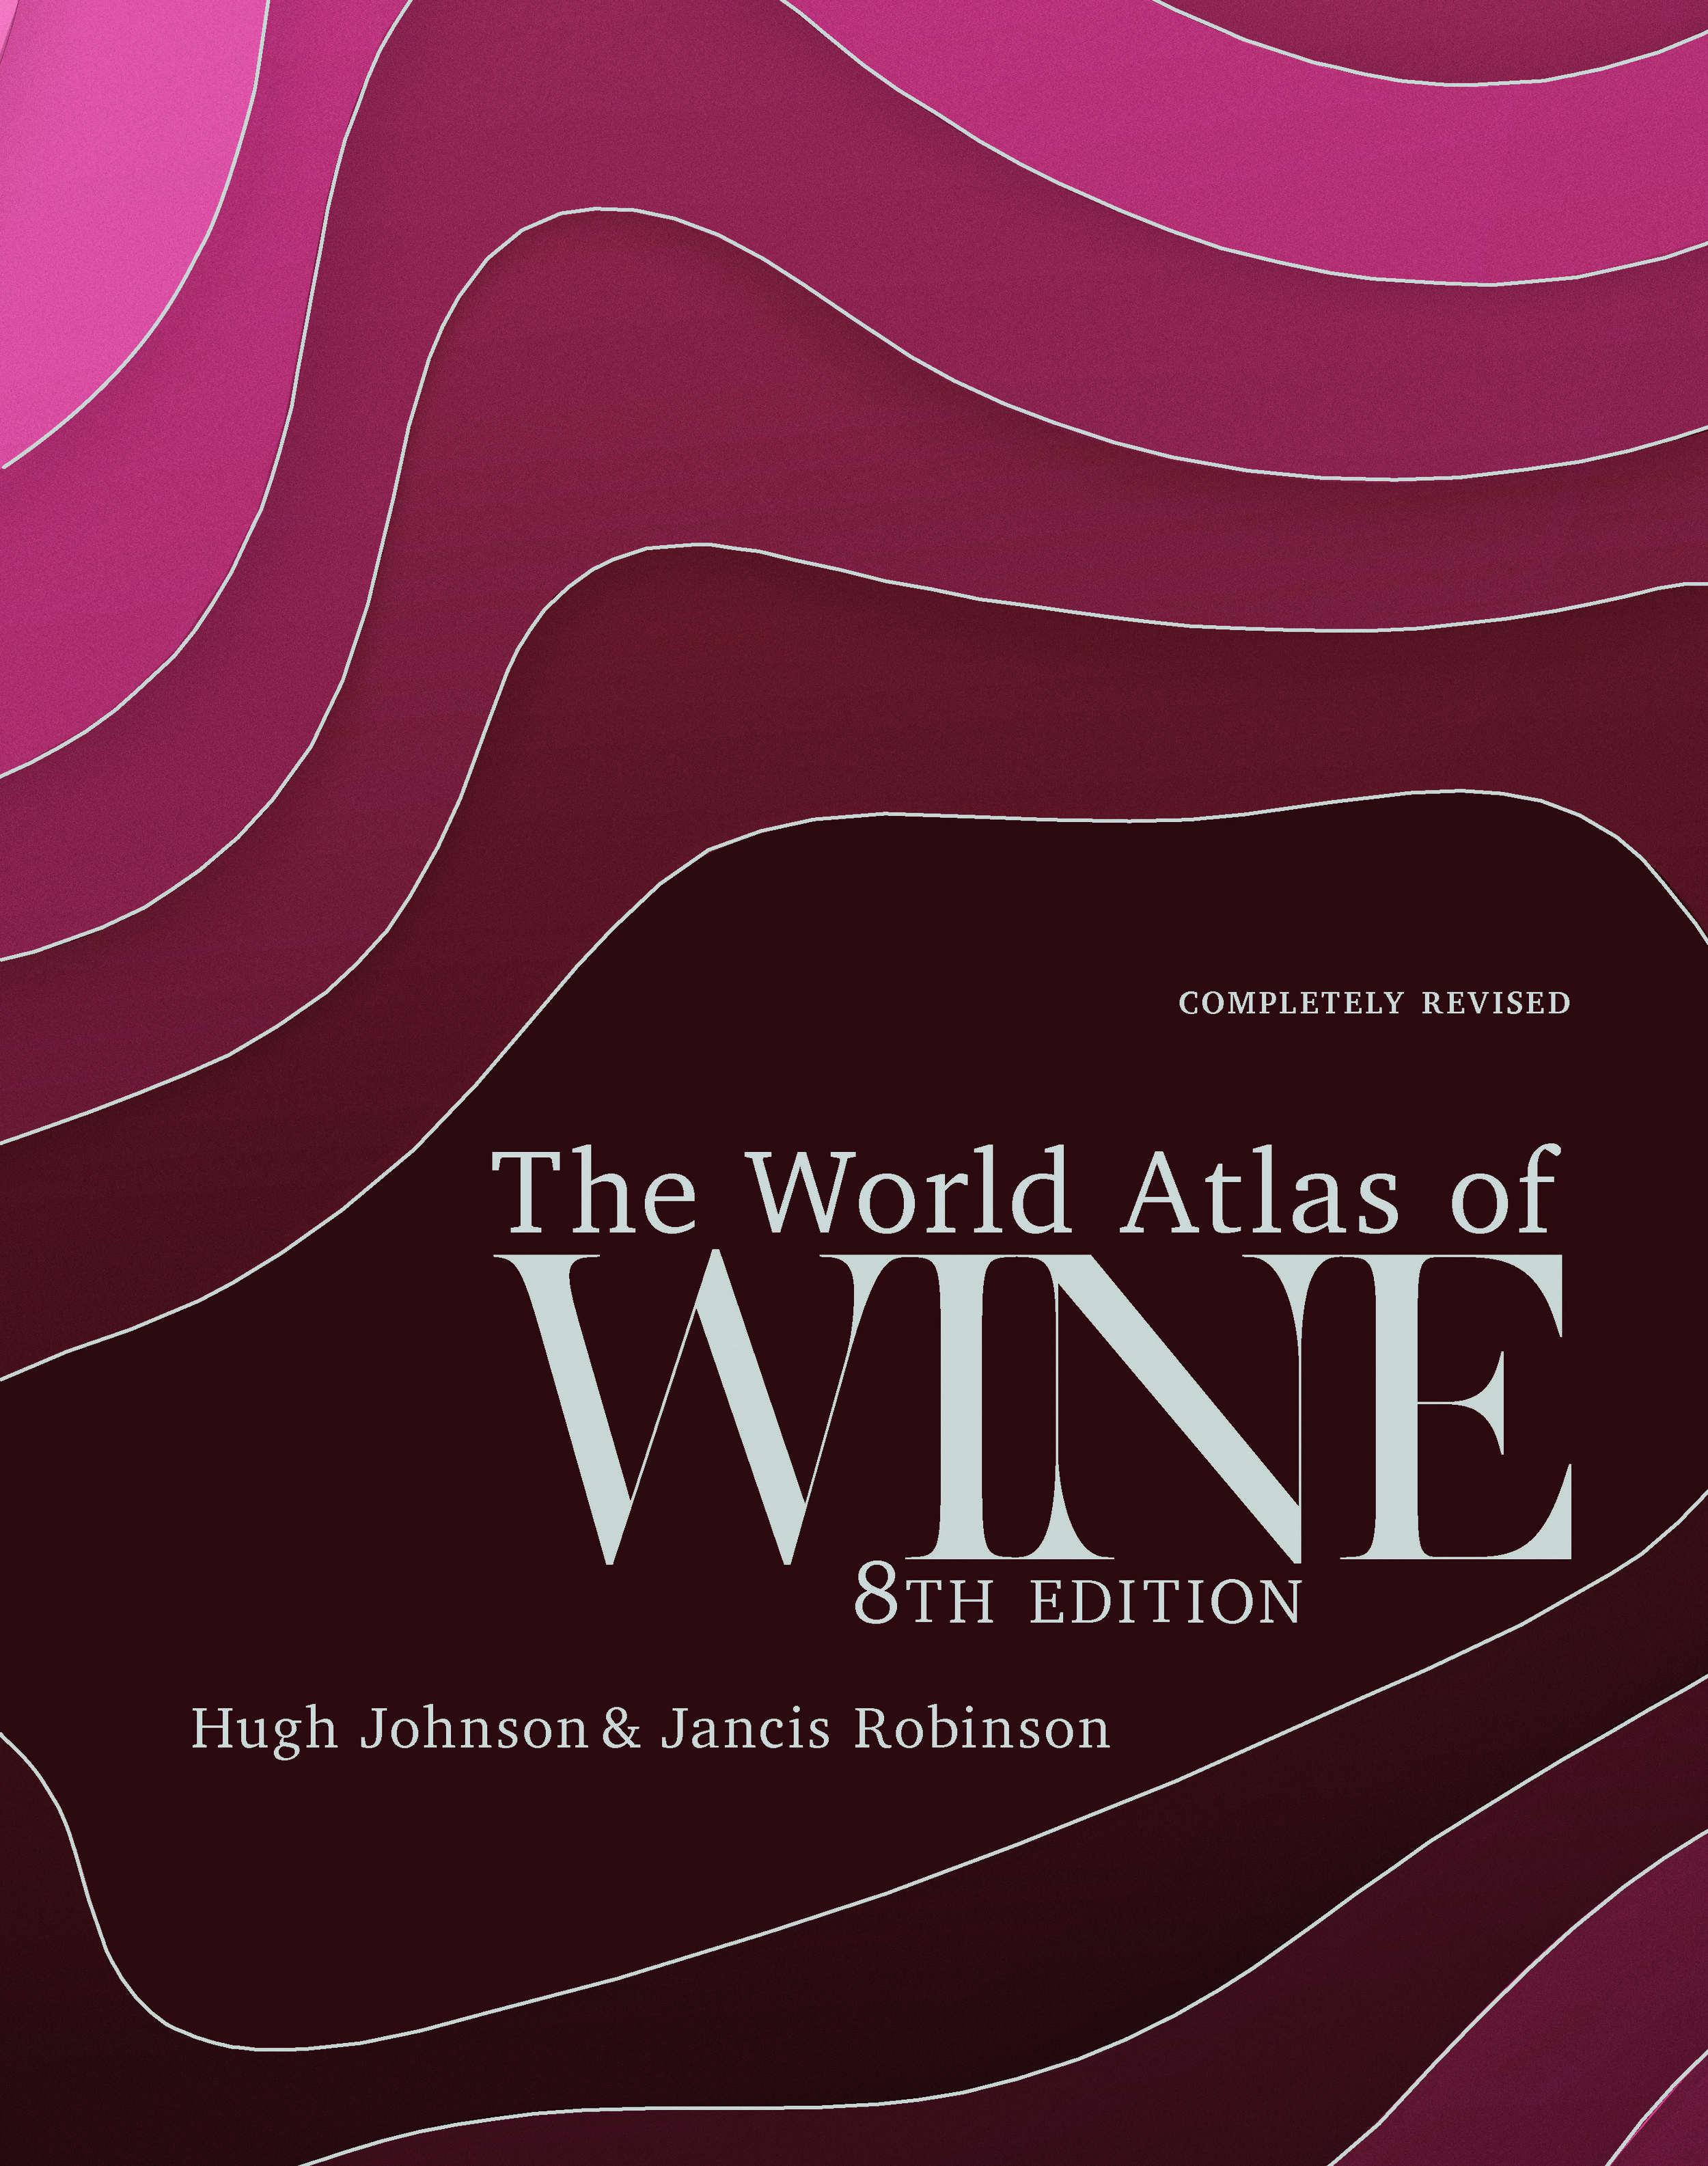 The World Atlas of Wine, 8th Edition - Few wine books can be called classic, but the first edition of The World Atlas of Wine made publishing history when it appeared in 1971. It is recognized by critics as the essential and most authoritative wine reference work available. This eighth edition will bring readers, both old and new, up to date with the world of wine.Octopus Books, Oct. 1, 2019.Read more here »